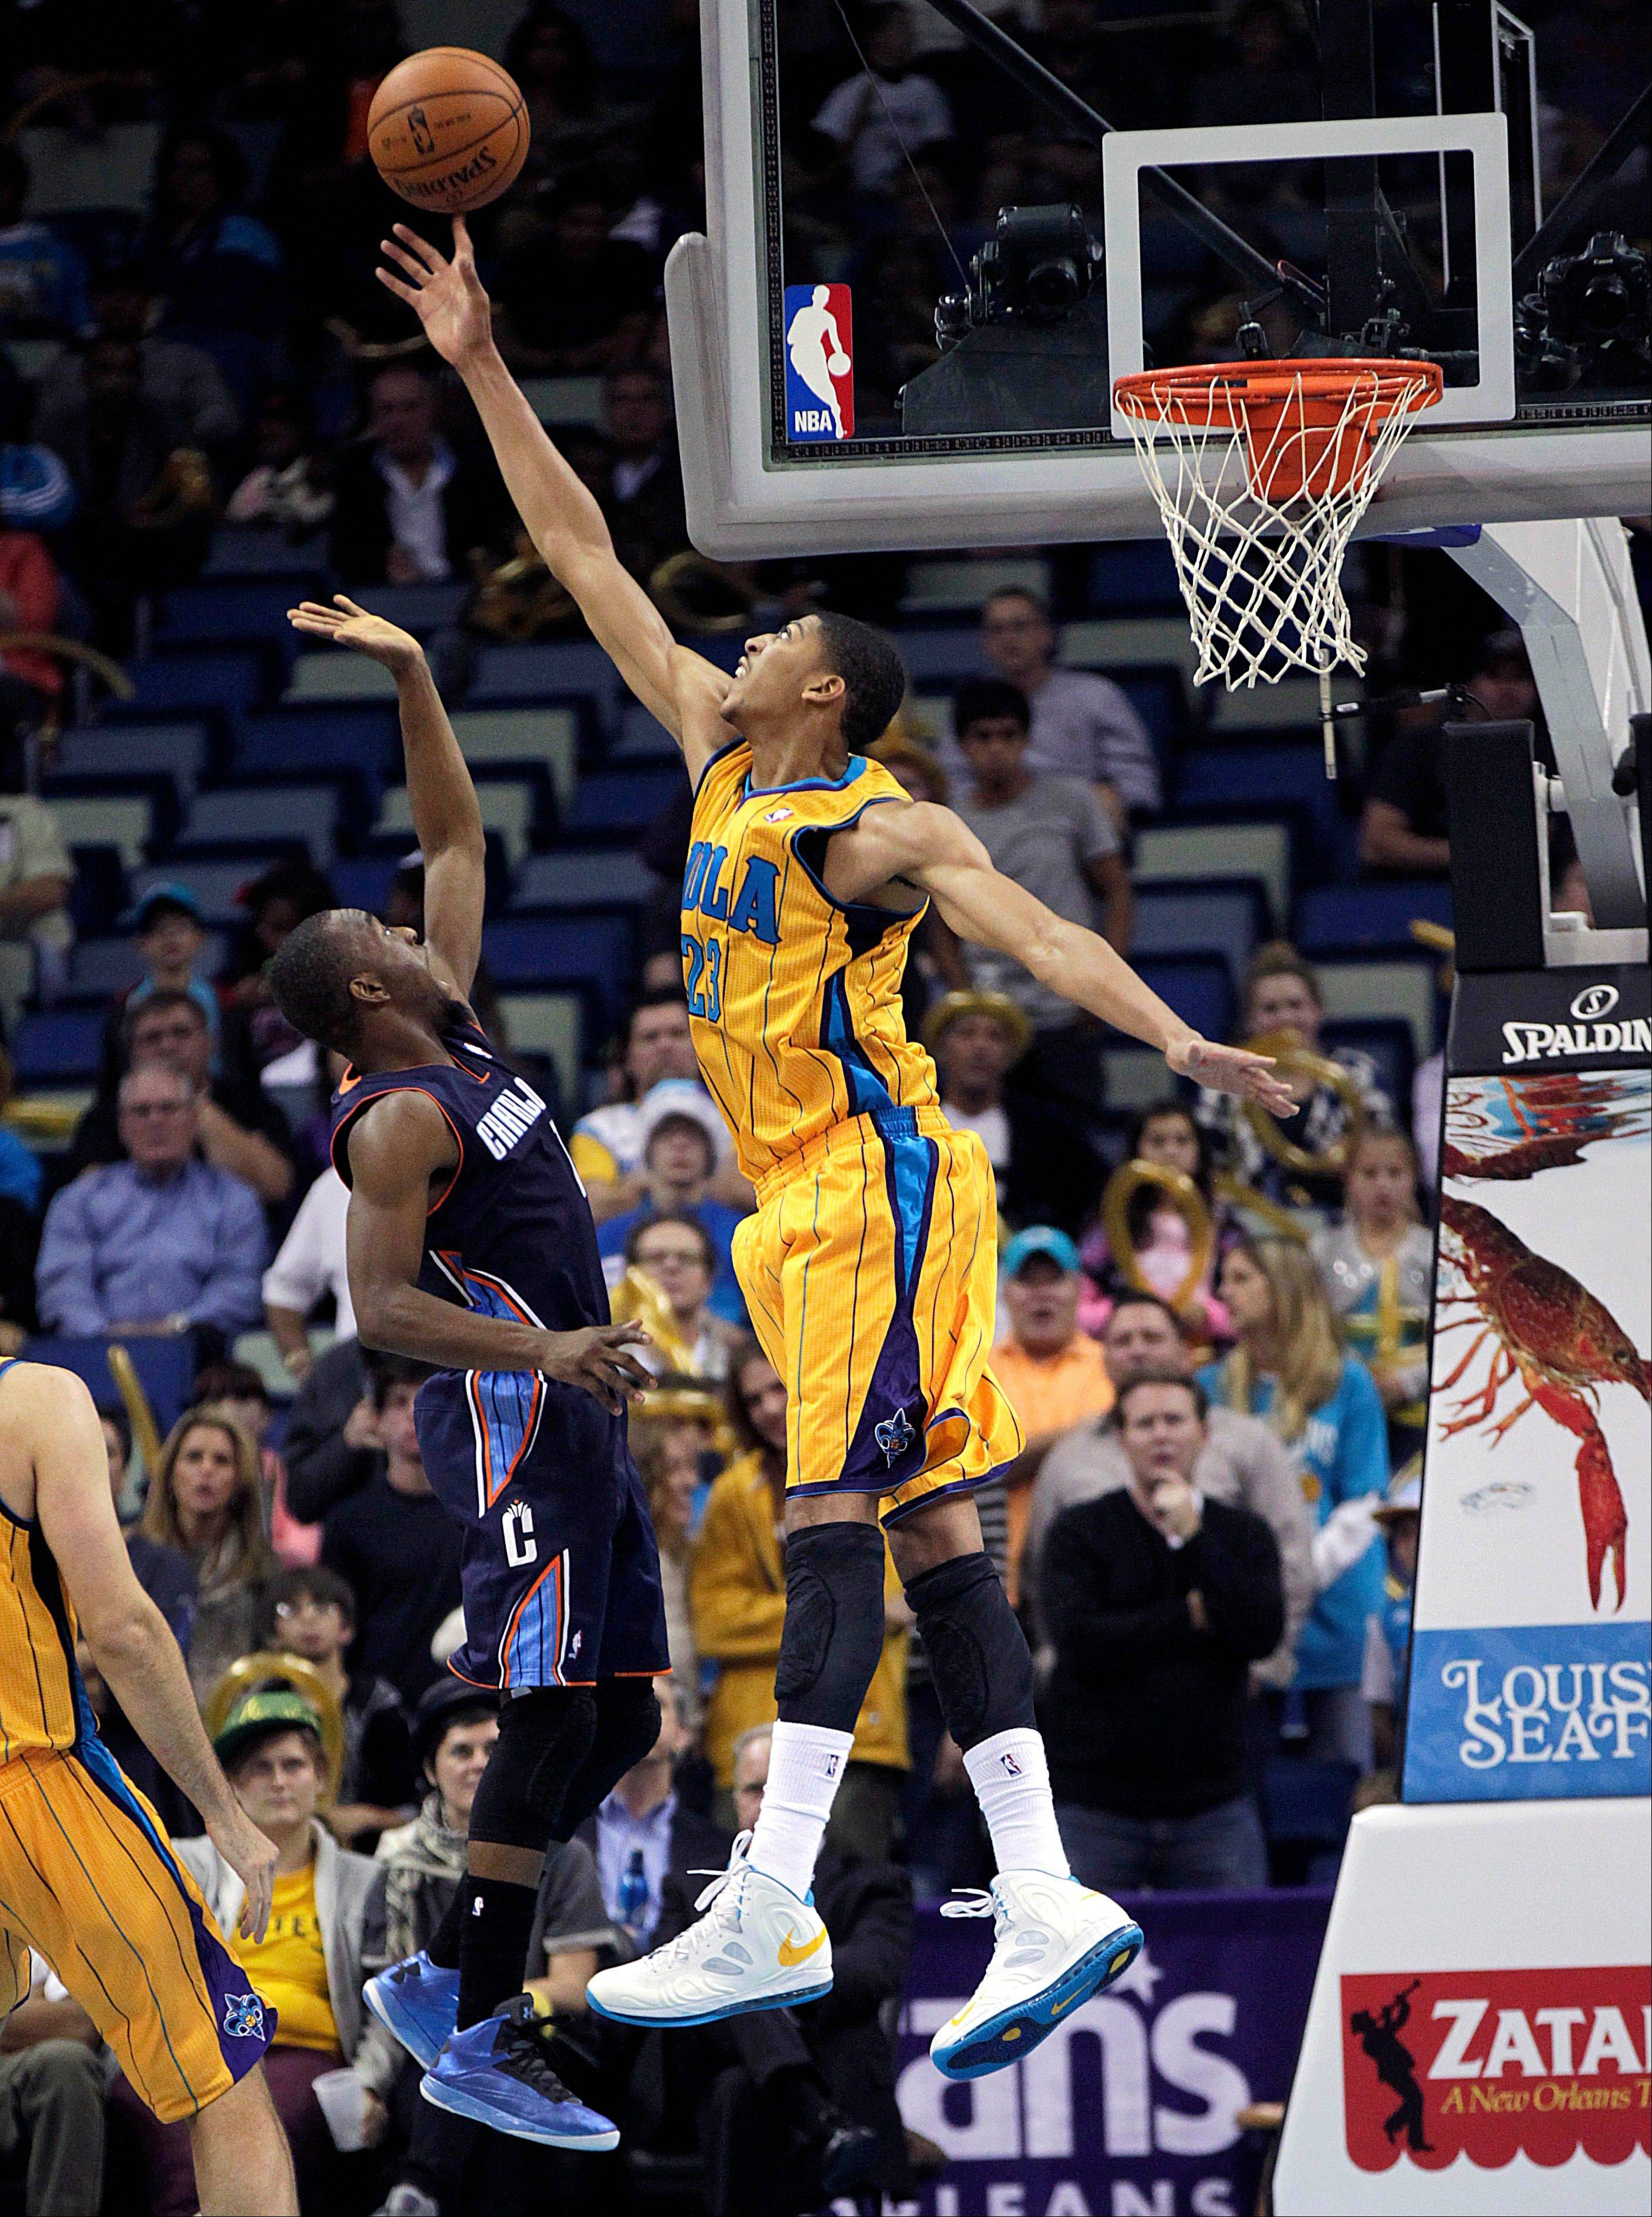 New Orleans Hornets power forward Anthony Davis (23) blocks a shot by Charlotte Bobcats power forward Bismack Biyombo in the second half of an NBA basketball game in New Orleans, Friday, Nov. 9, 2012. The Hornets won 107-99. (AP Photo/Gerald Herbert)